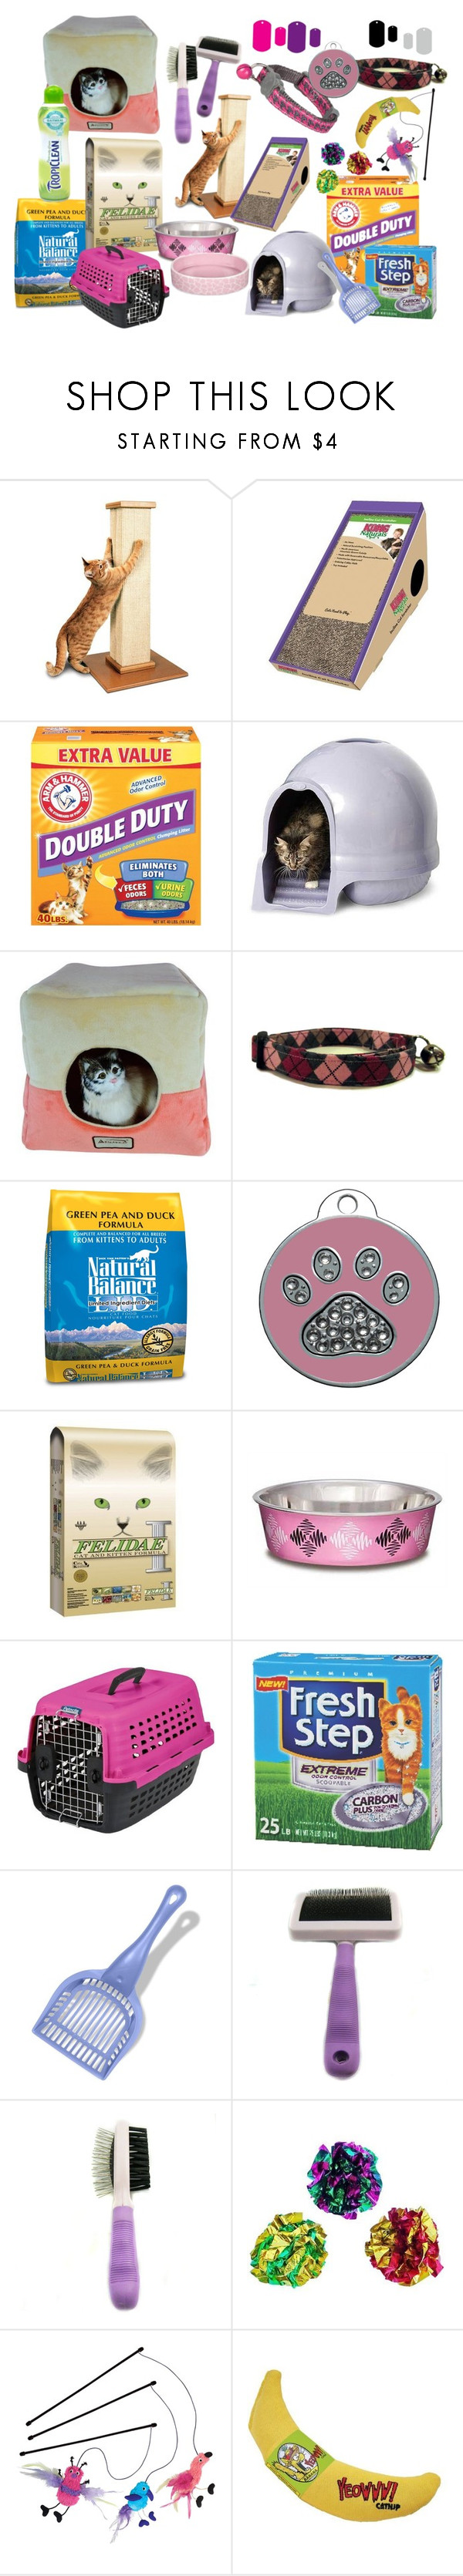 CAT STARTER KIT By Audreyterp Liked On Polyvore Featuring Interior Interiors